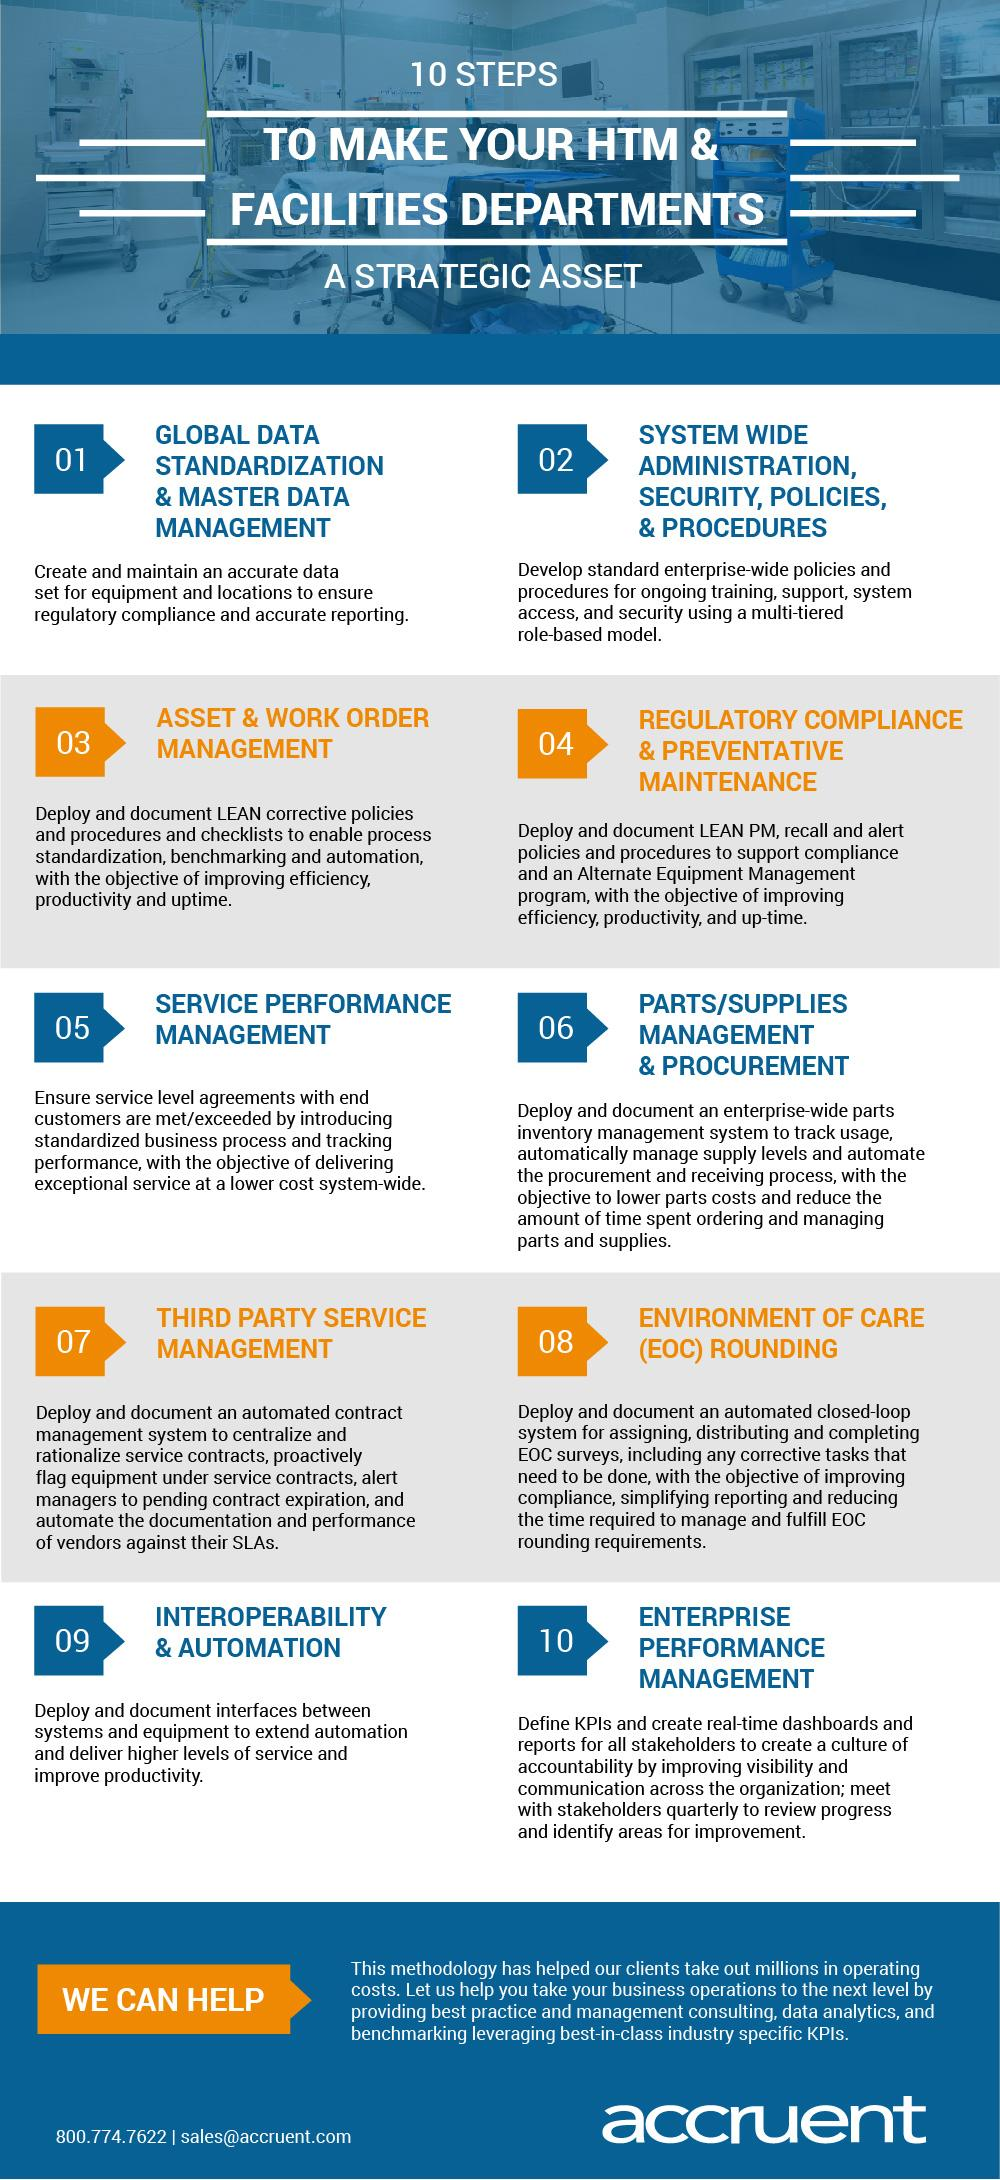 Accruent - Resources - Infographics - 10 Steps to Make Your HTM & Facilities Departments a Strategic Asset - Hero